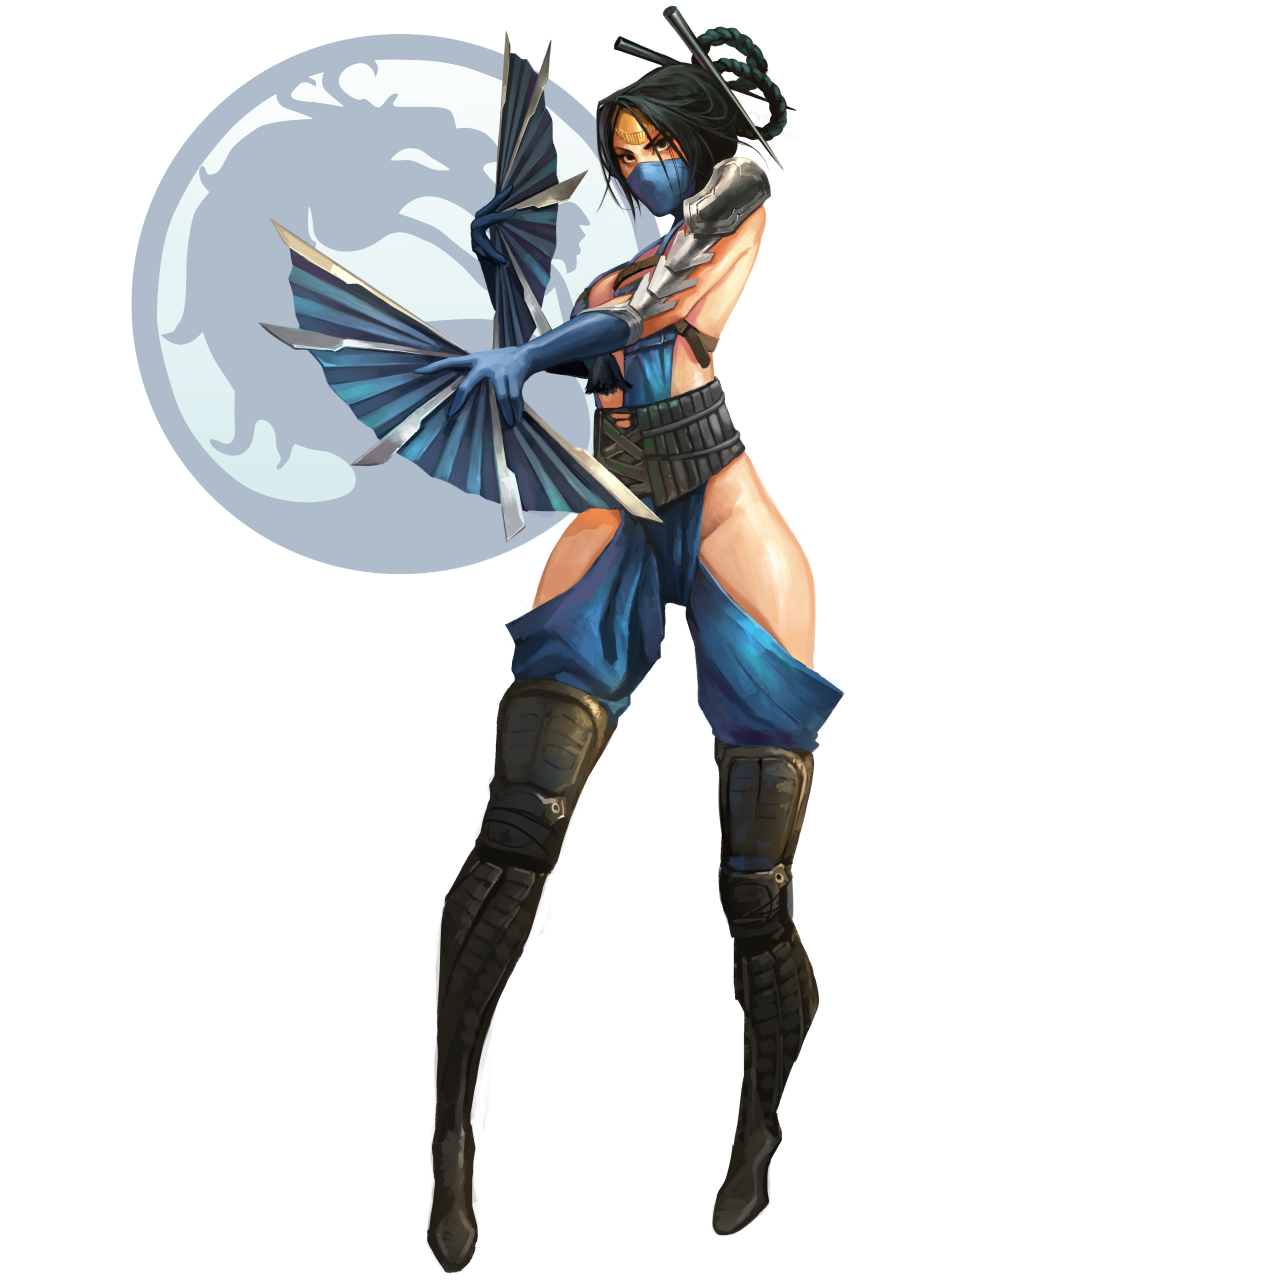 Kitana drawing painting. Fan page nikusenpai evo